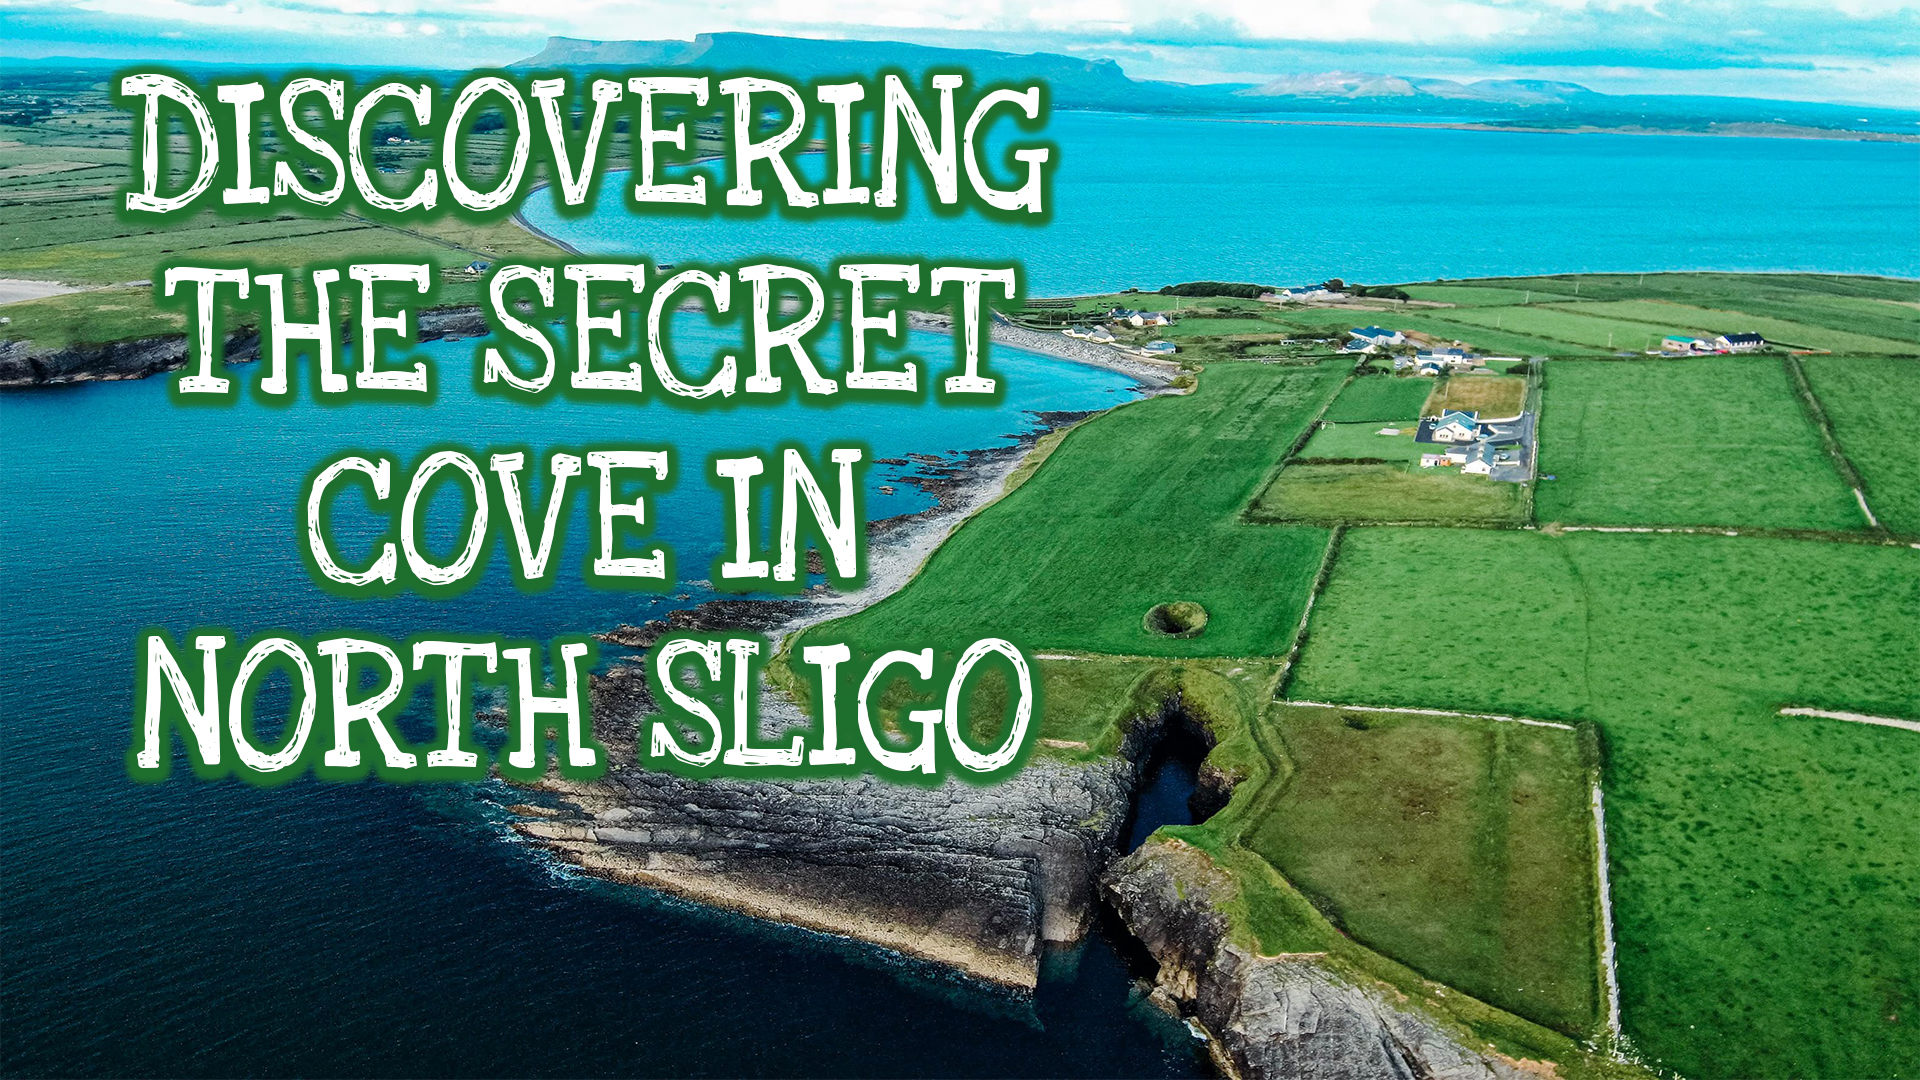 DISCOVERING THE SECRET COVE IN NORTH SLIGO